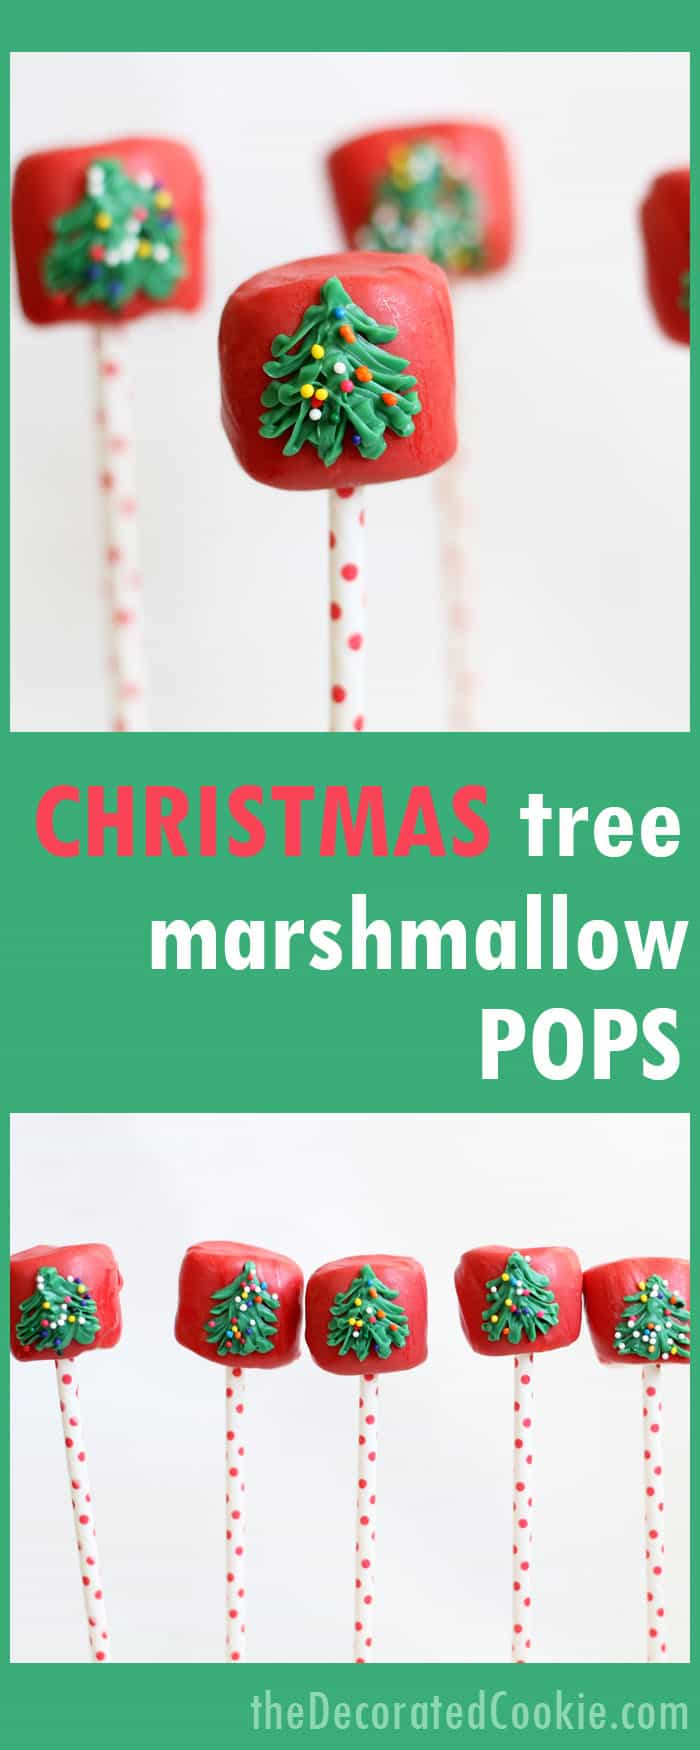 Christmas tree marshmallow pops, easy fun food for Christmas